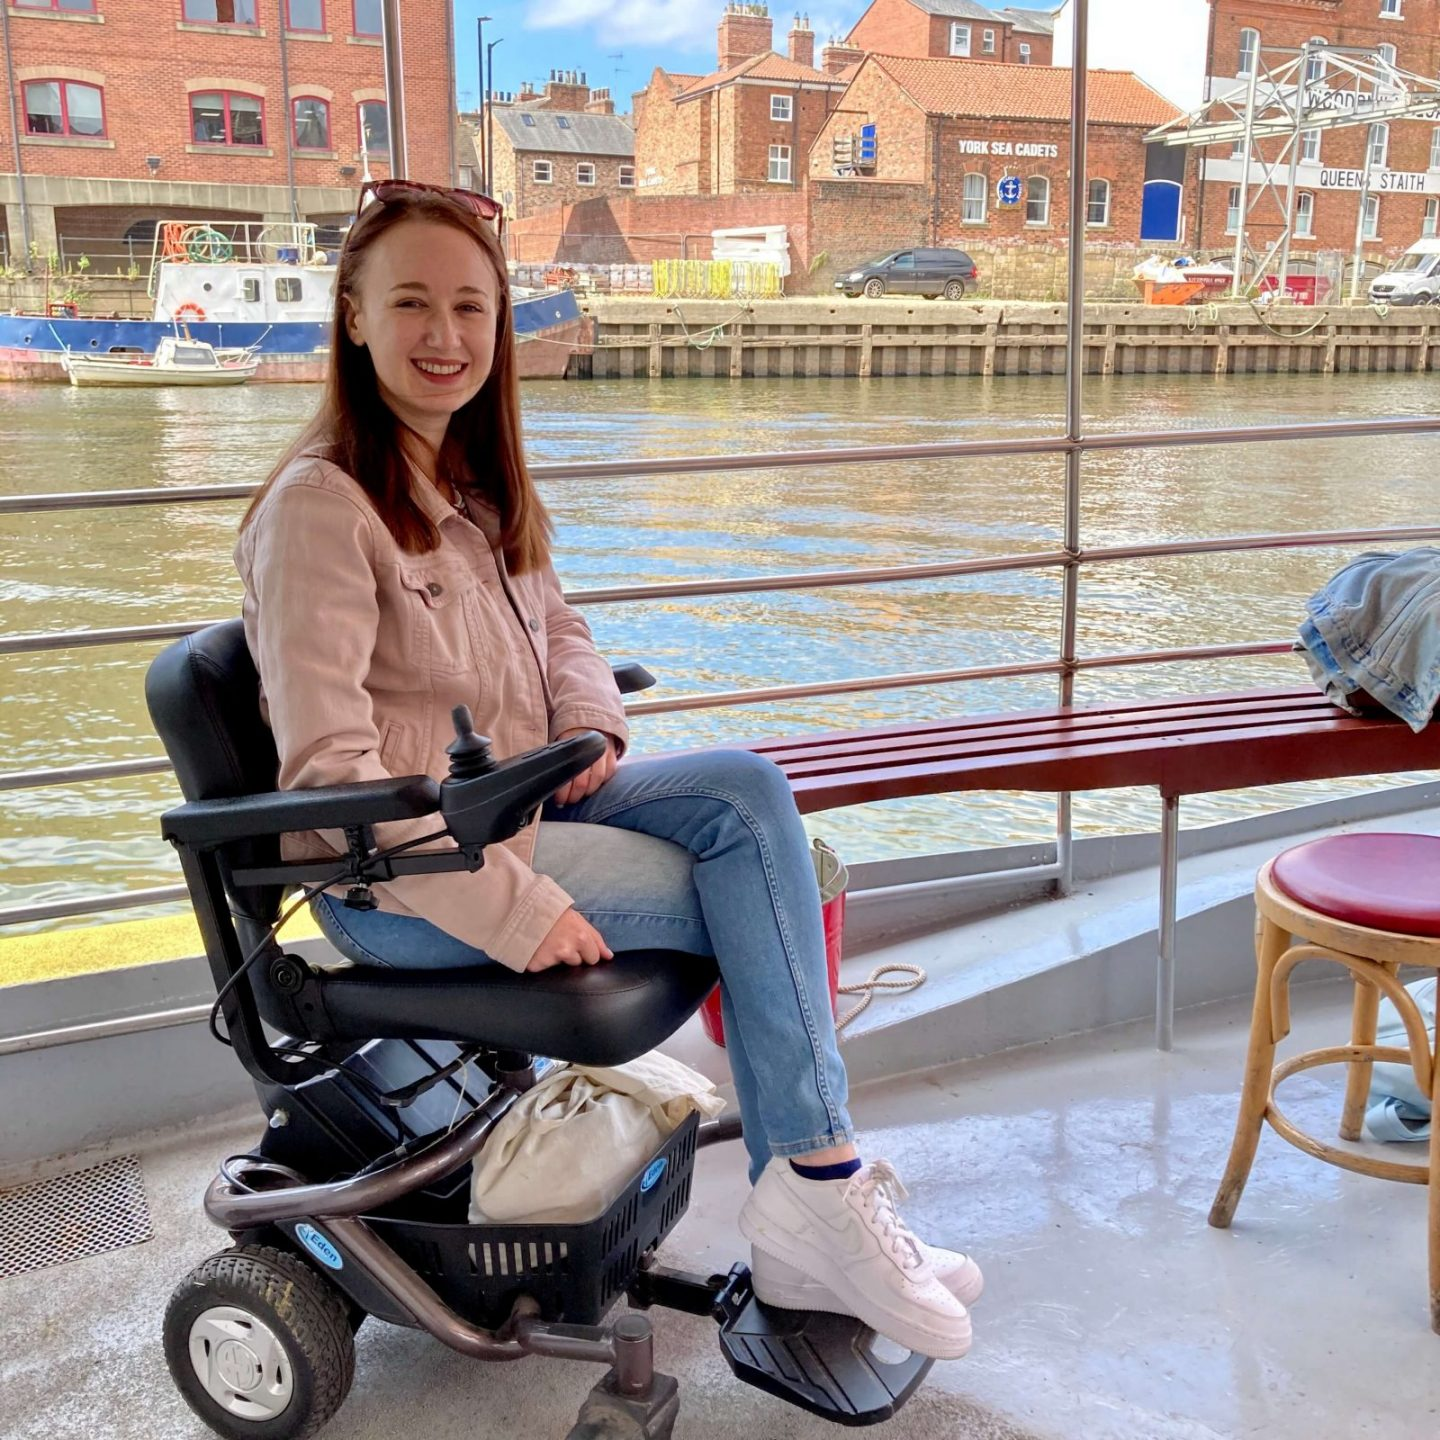 pippa sat in small black powerchair on board boat, with river and dock visible in background. pippa is wearing a light pink denim jacket, blue jeans and white trainers.